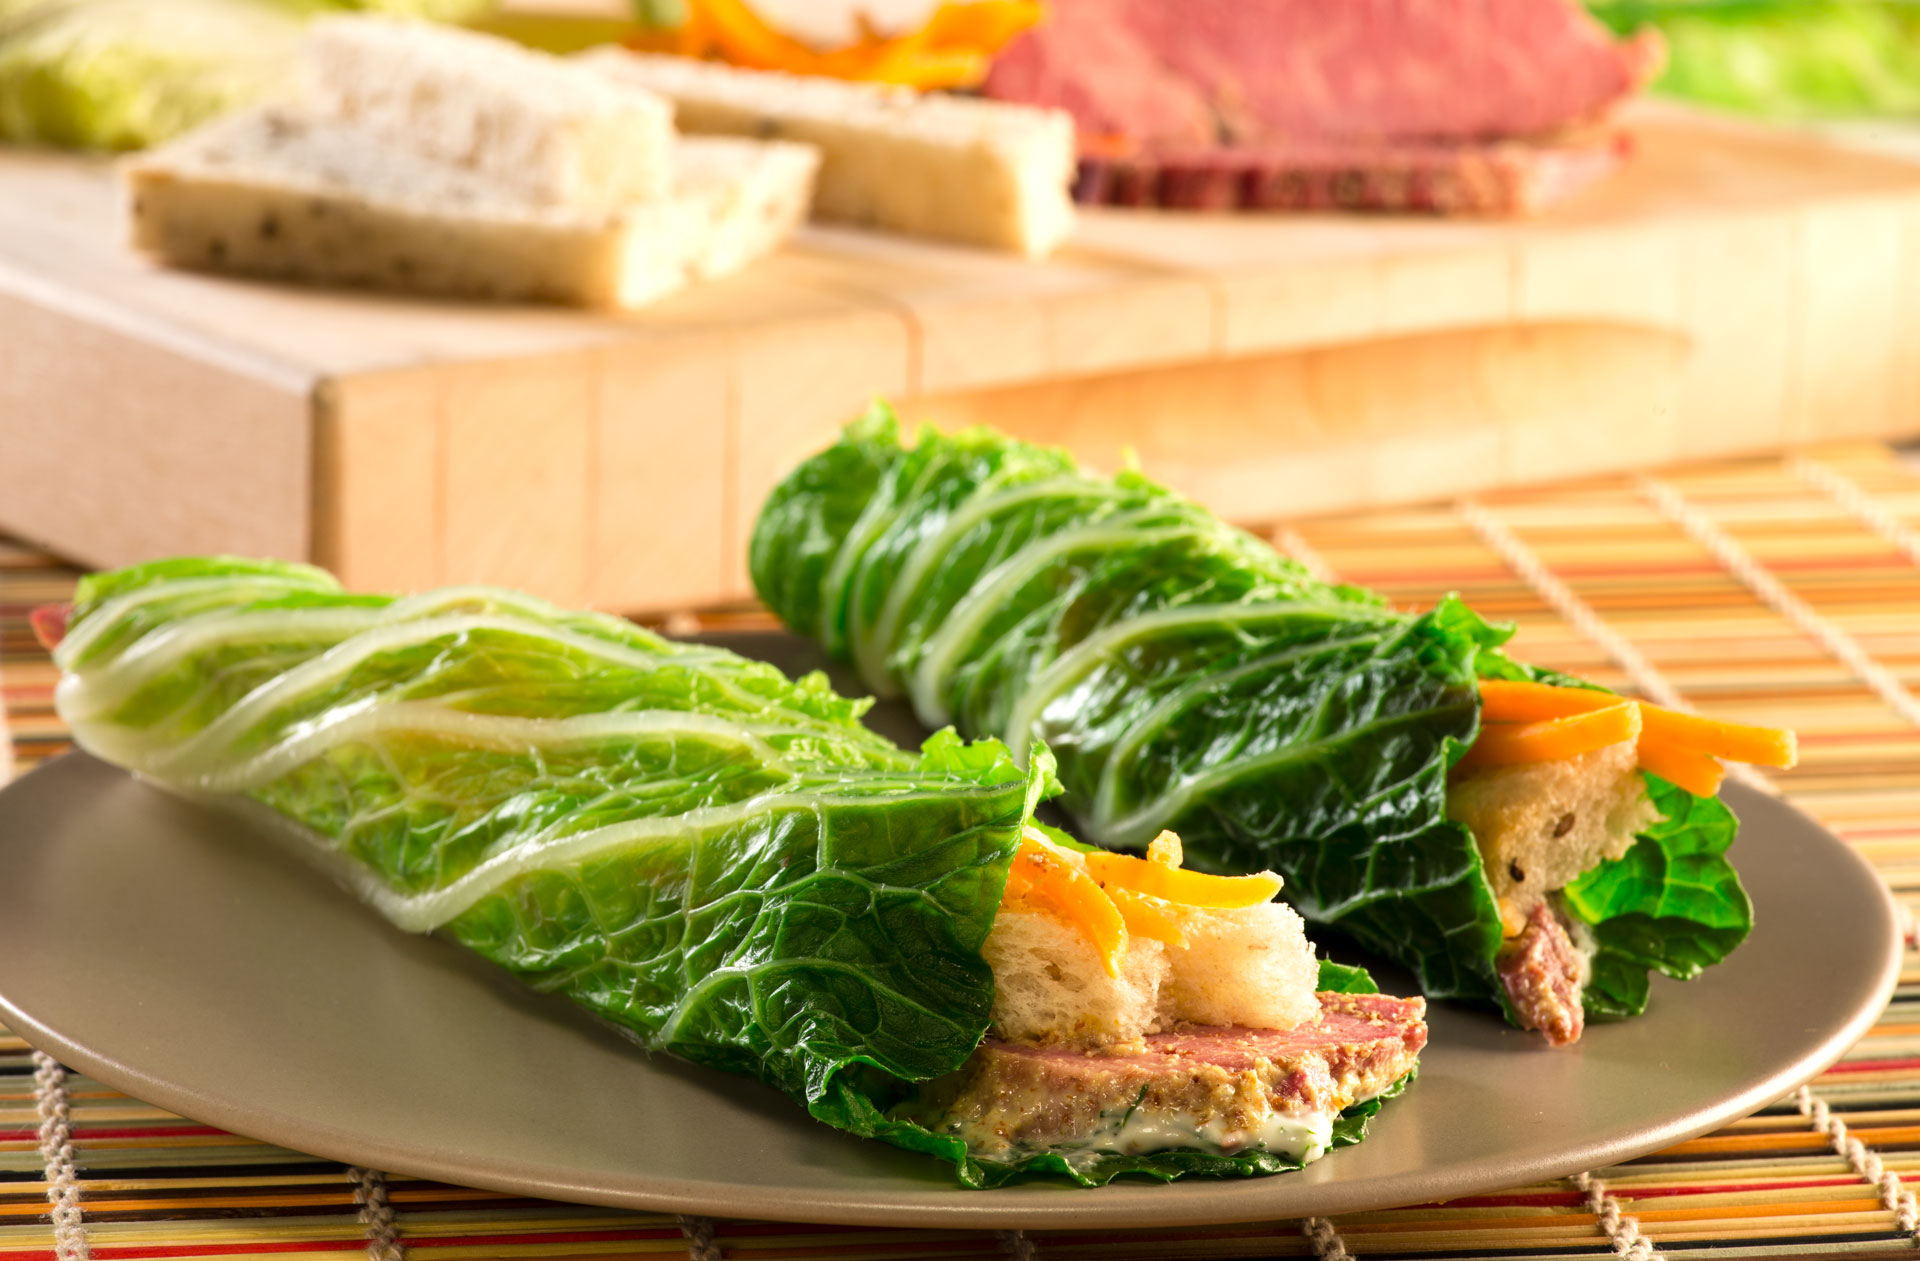 Inspired by the typically deep fried Irish egg roll, our Irish Spring Roll recipe features a cabbage wrap filled with a delicious corned beef mixture of fresh ingredients, making it a lighter alternative that still packs a flavorful punch.